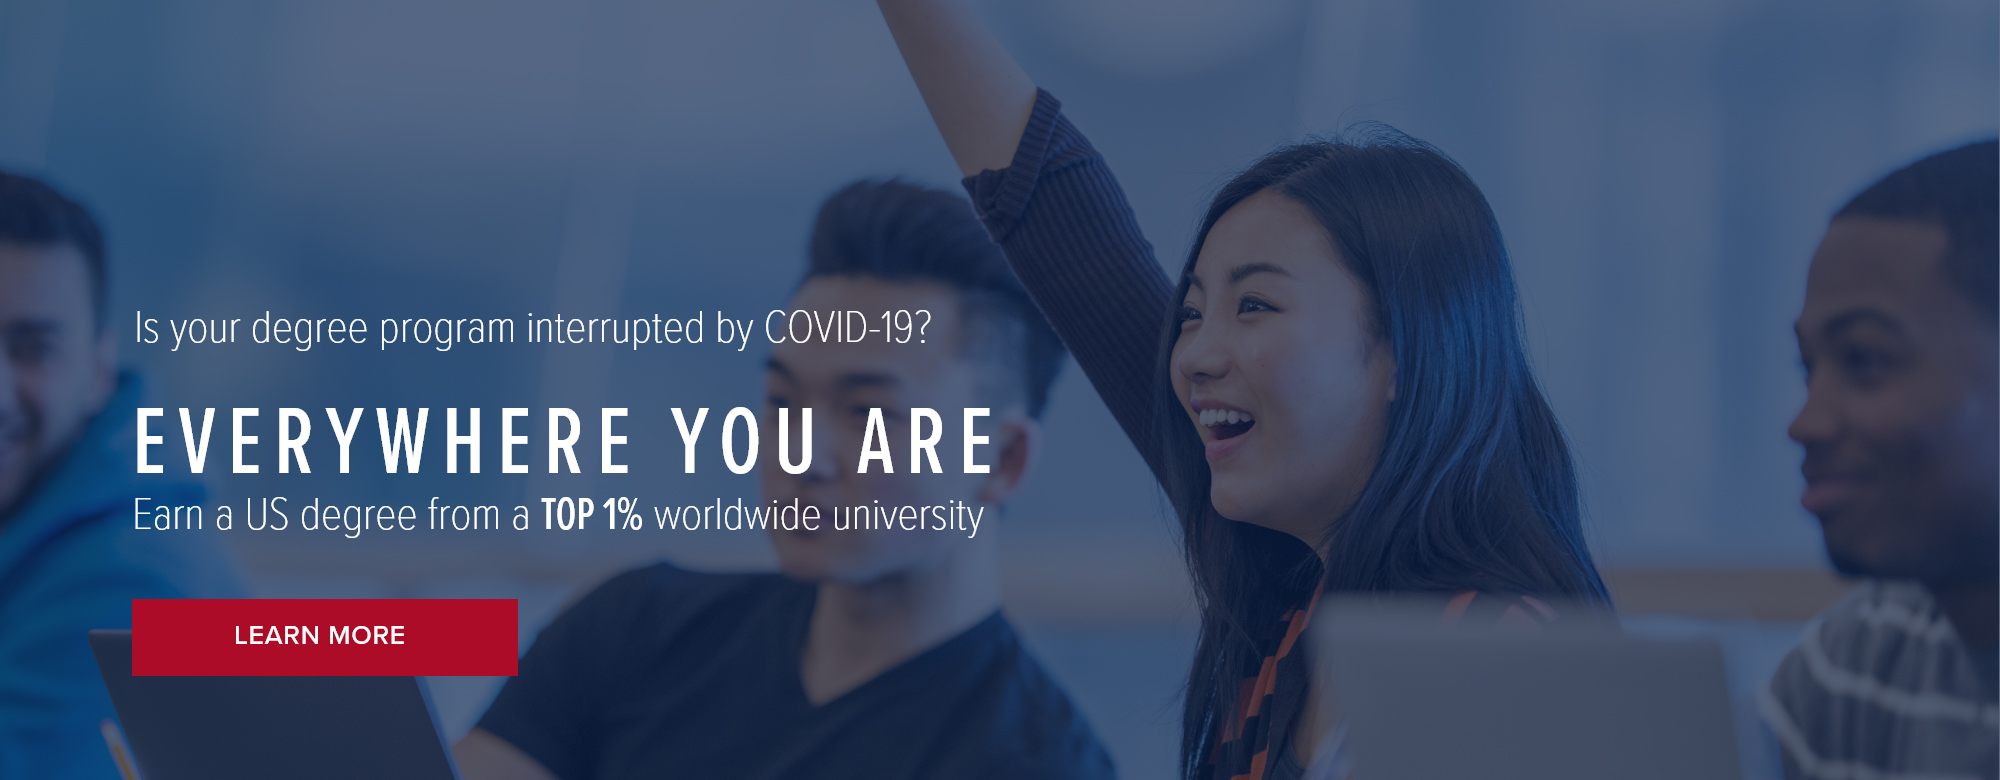 Is your degree program interrupted by COVID-19? Click here to learn about Global Campus